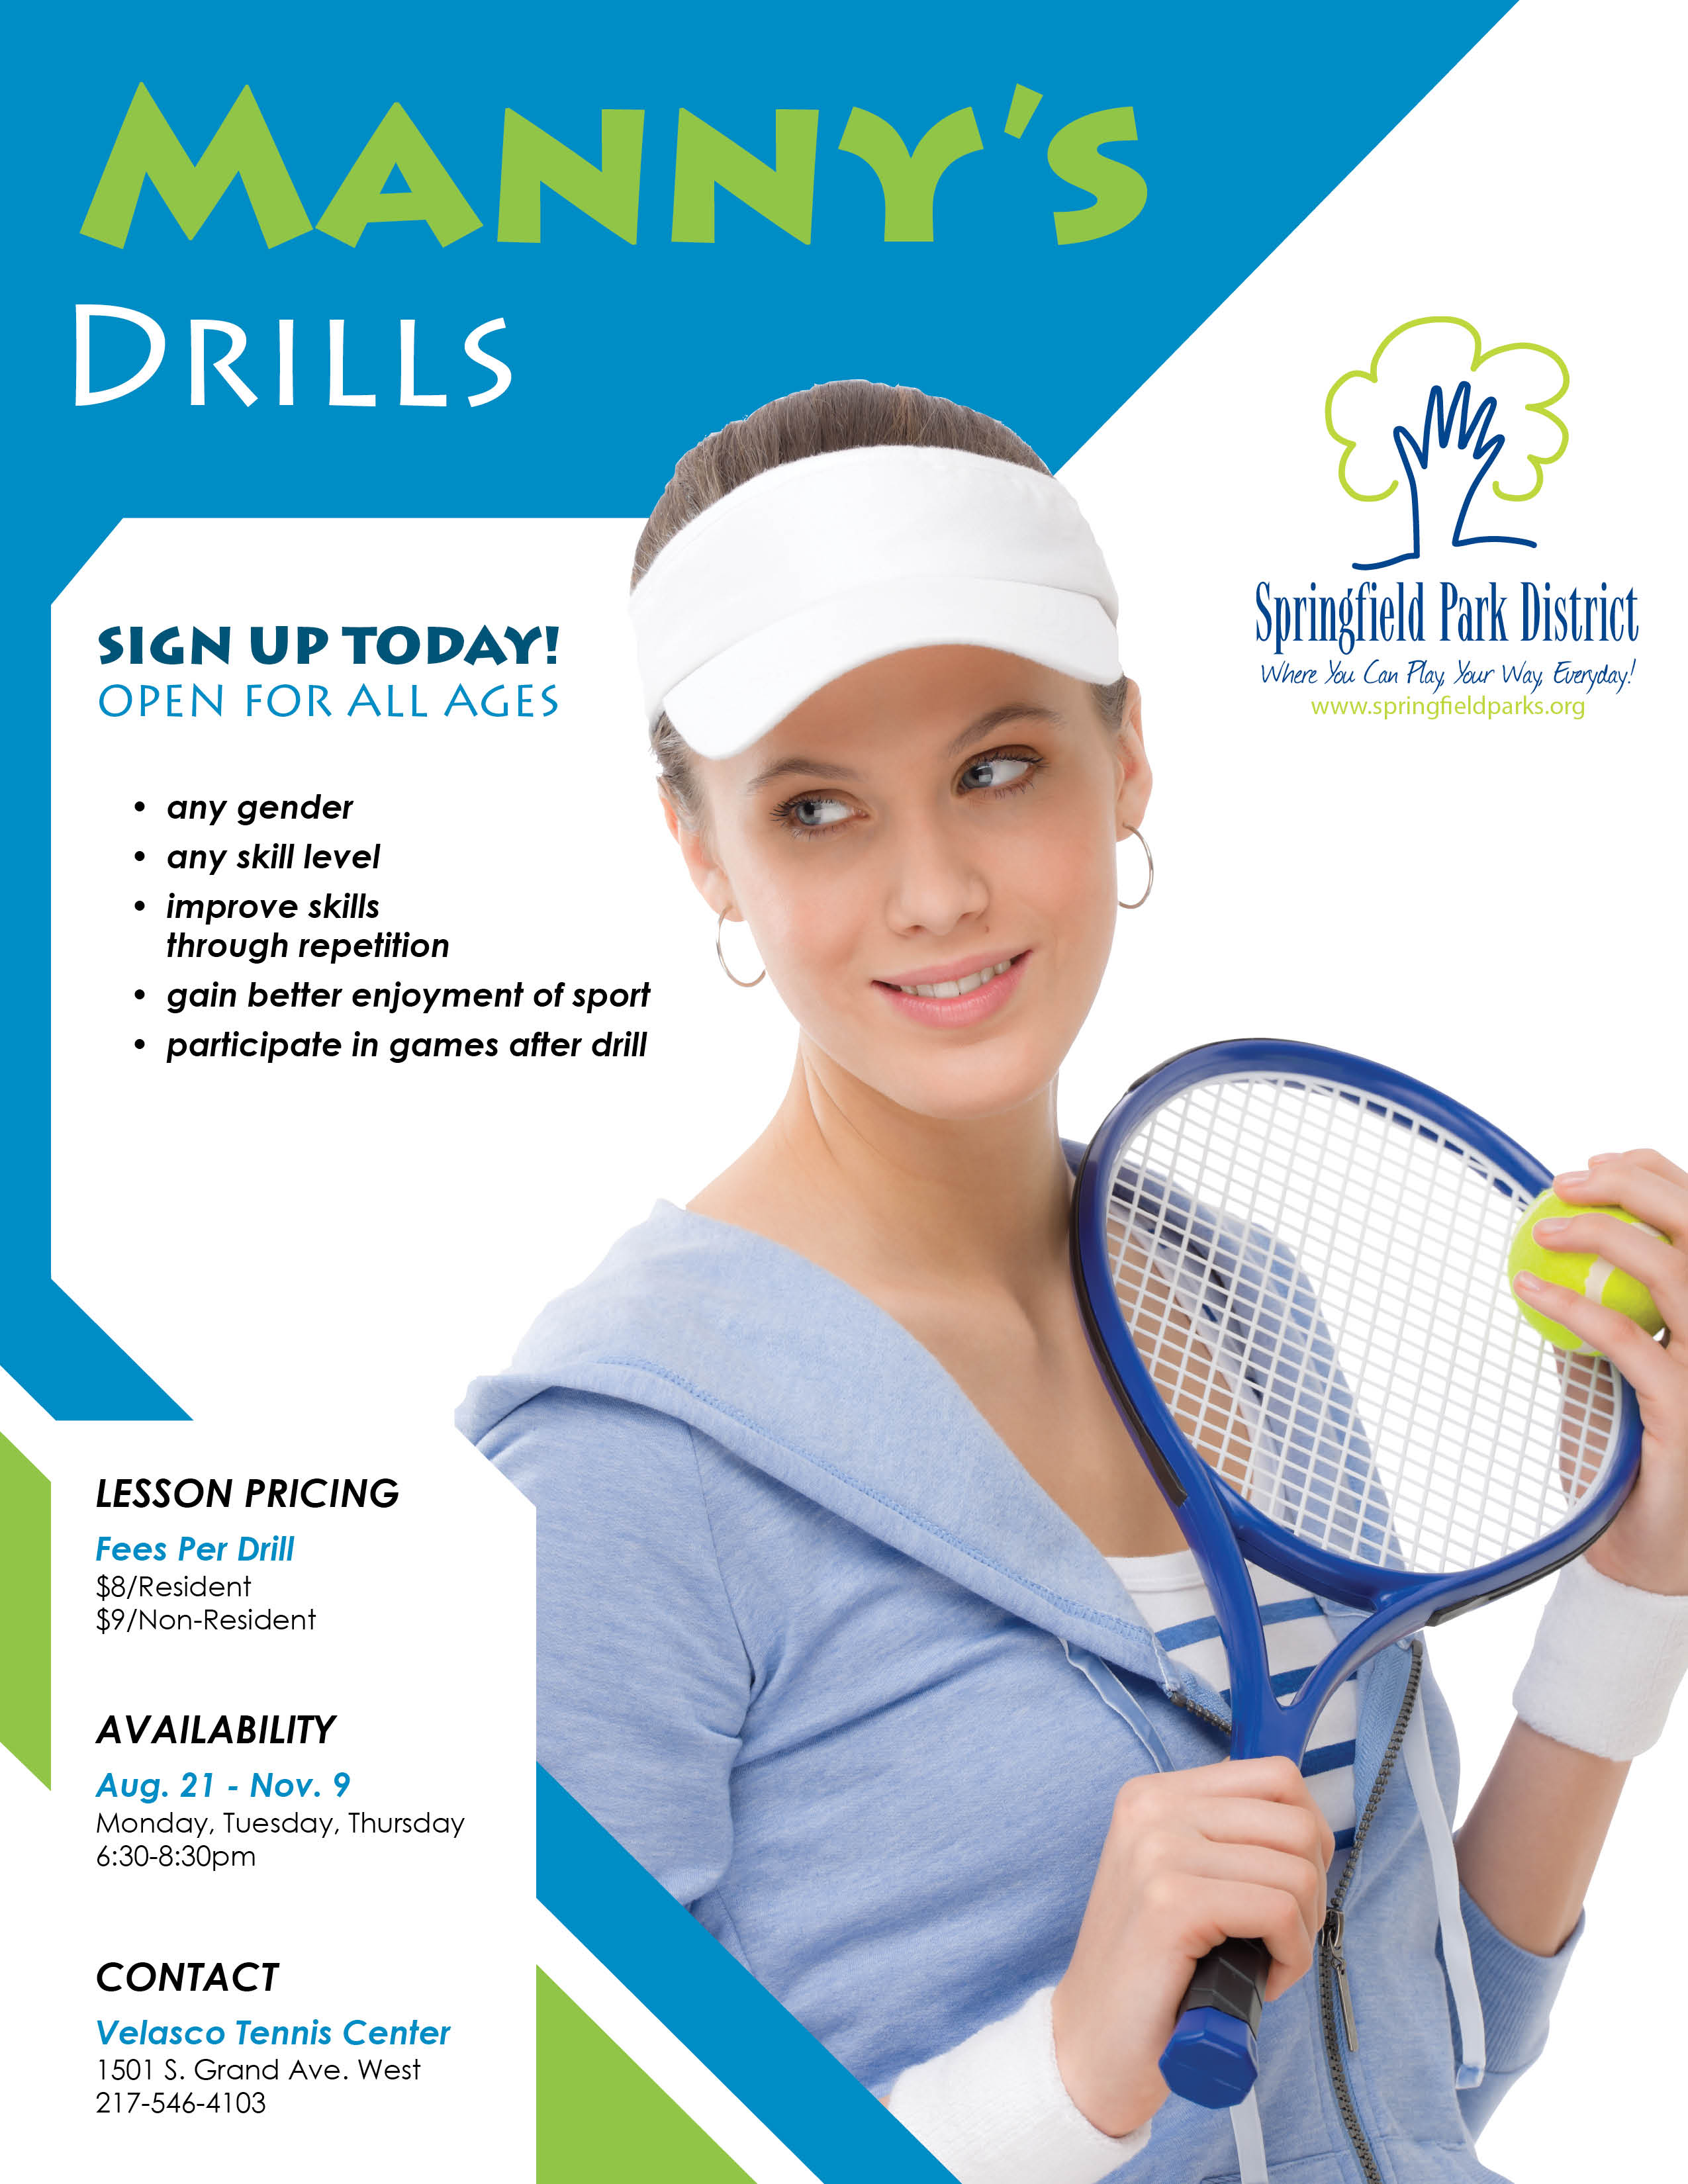 This Program Runs From August 21 Through November 9 (or The First Snow)  From 6:308:30pm On Mondays, Tuesdays And Thursdays At The Velasco Tennis  Center